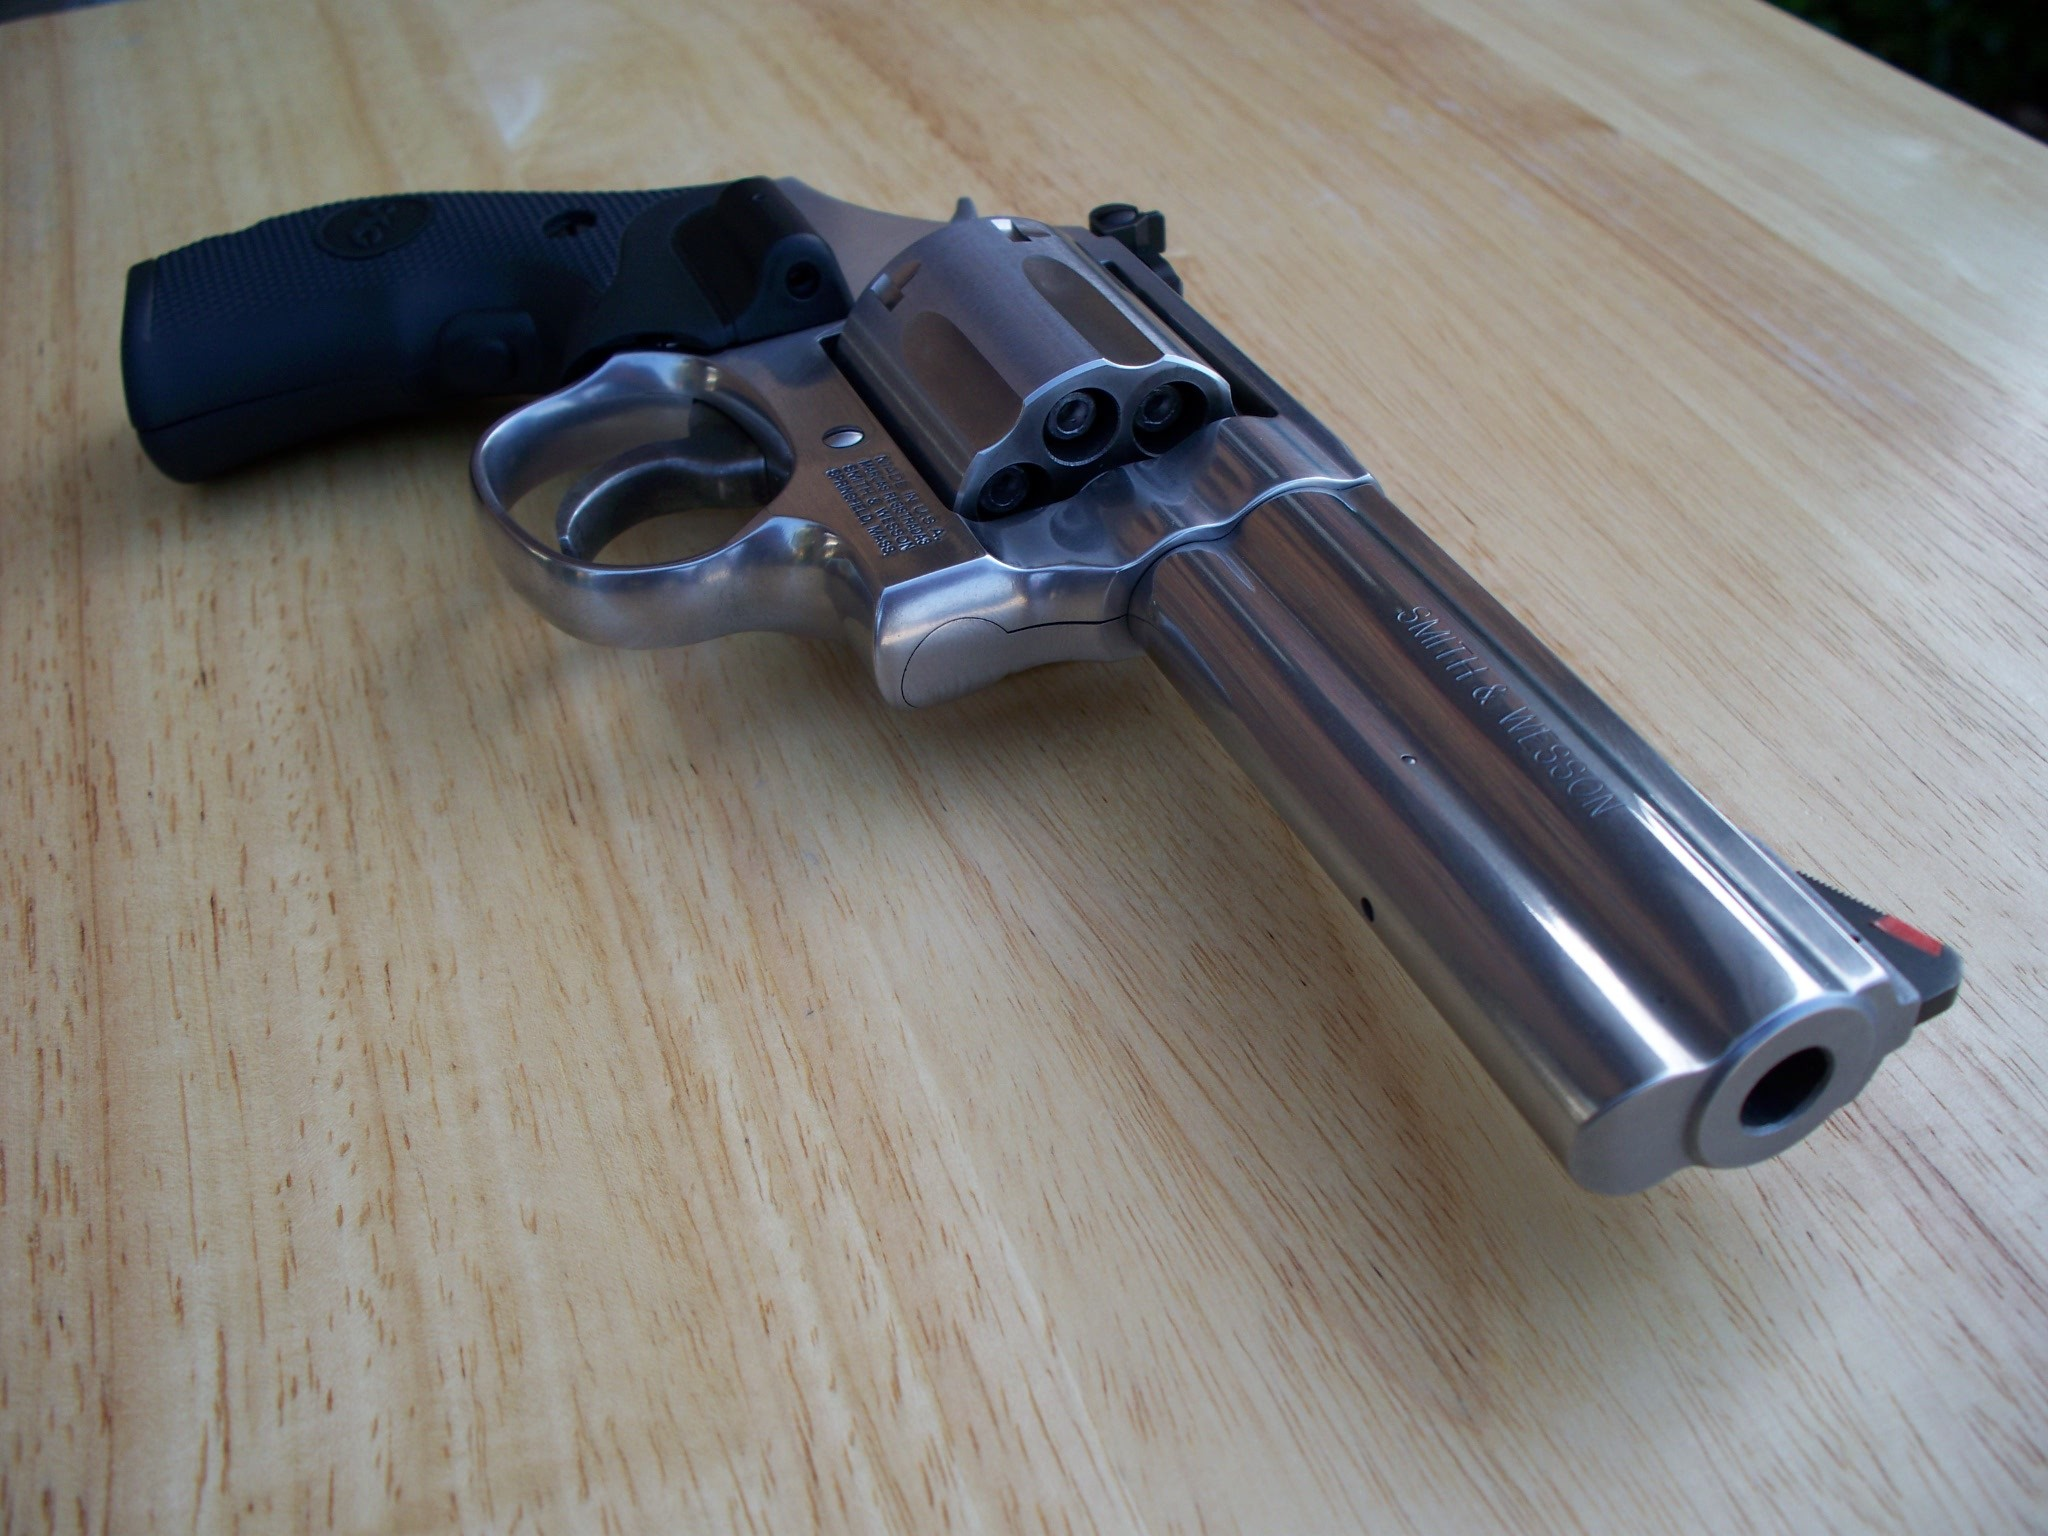 2048x1536 File:Smith & Wesson .357 Model 686 Plus barrel view.jpg